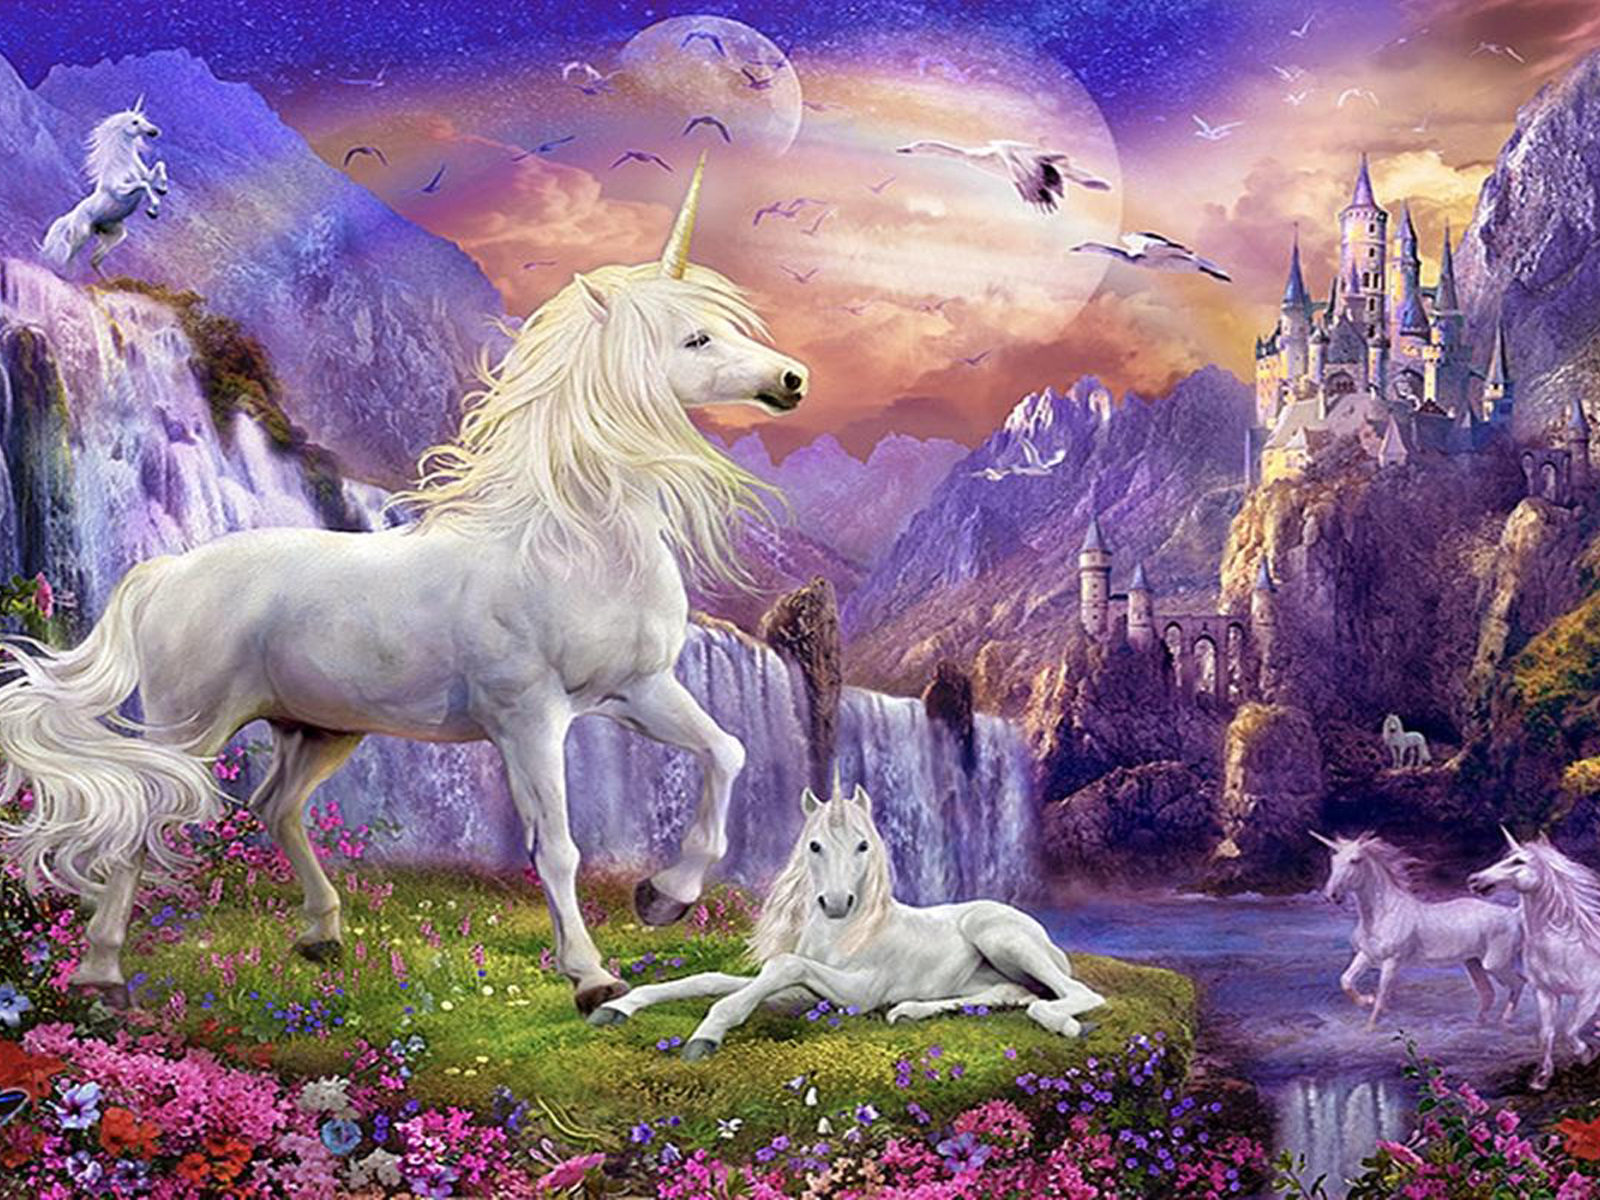 Cute Lock Screen Wallpapers For Iphone Fantasy Wallpaper Hd Unicorns Horse Castles Waterfalls